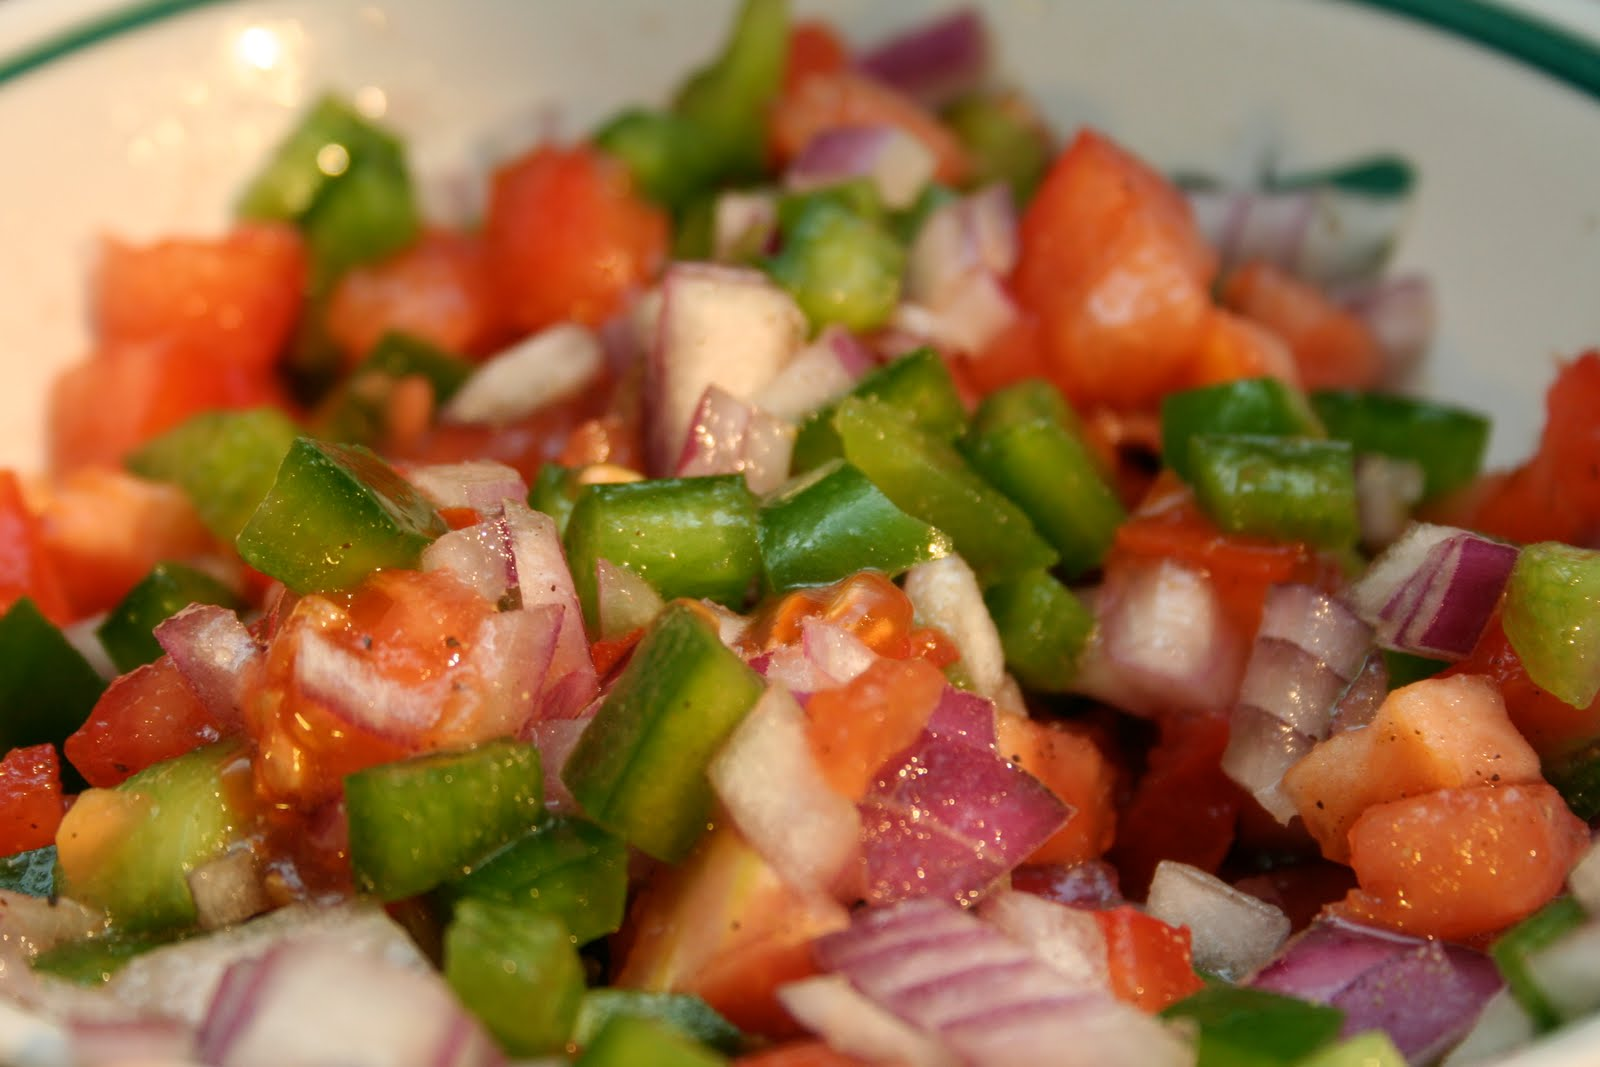 You top the dish with the salad of tomato, red onion, and green pepper. Bright, fresh, and crunchy, it breaks up the richness of the meat, eggs and potatoes. The dressing is equal parts vinegar and oil, plus generous salt.